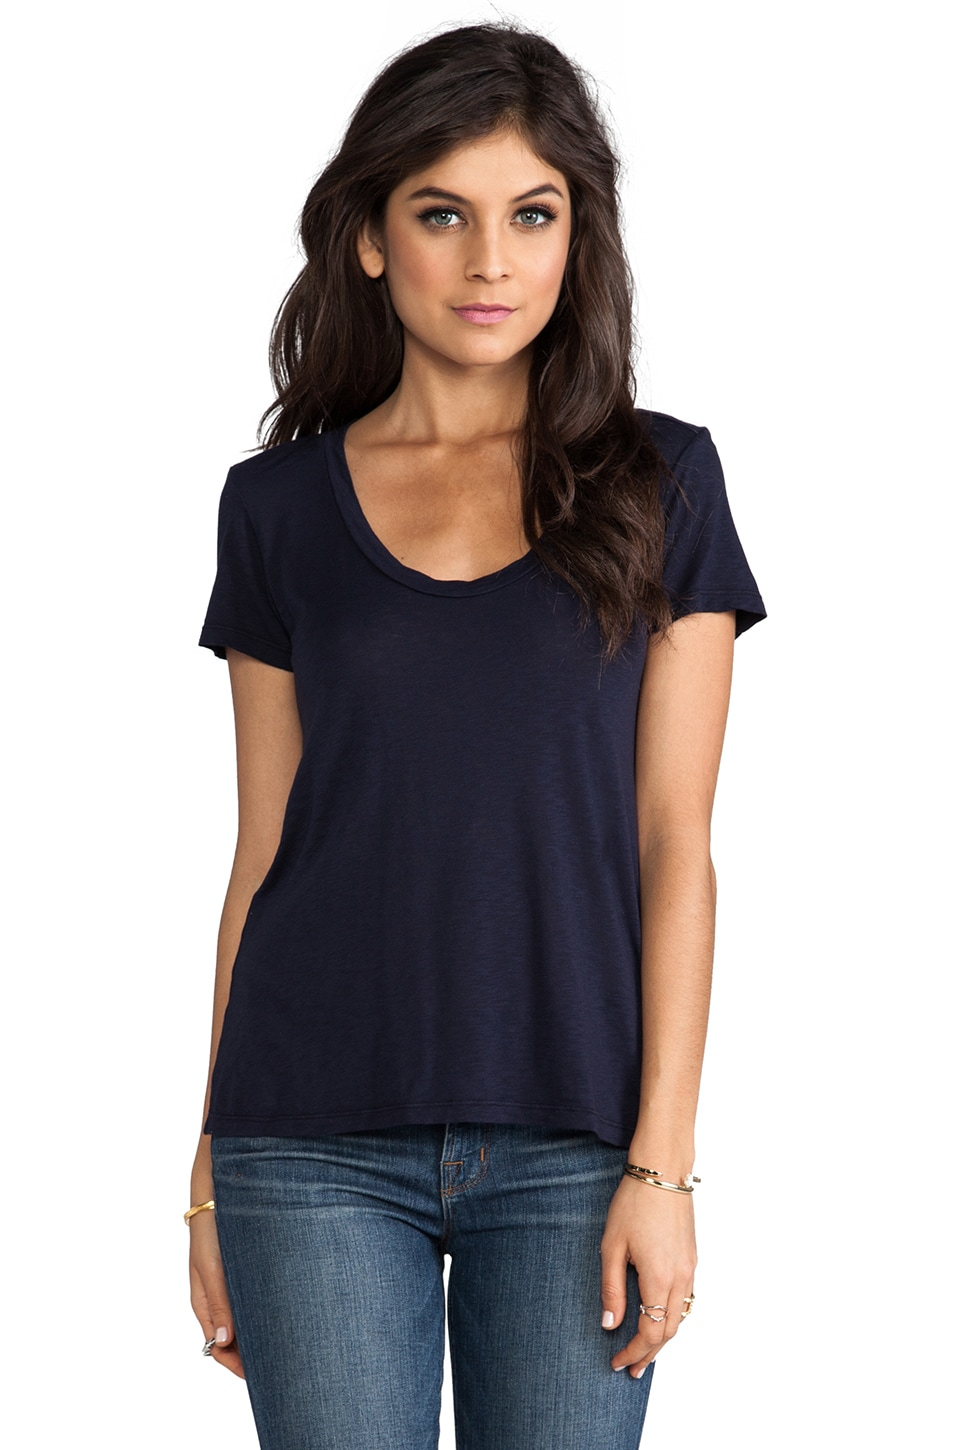 Velvet by Graham & Spencer Koren Luxe Slub Tee in Ink